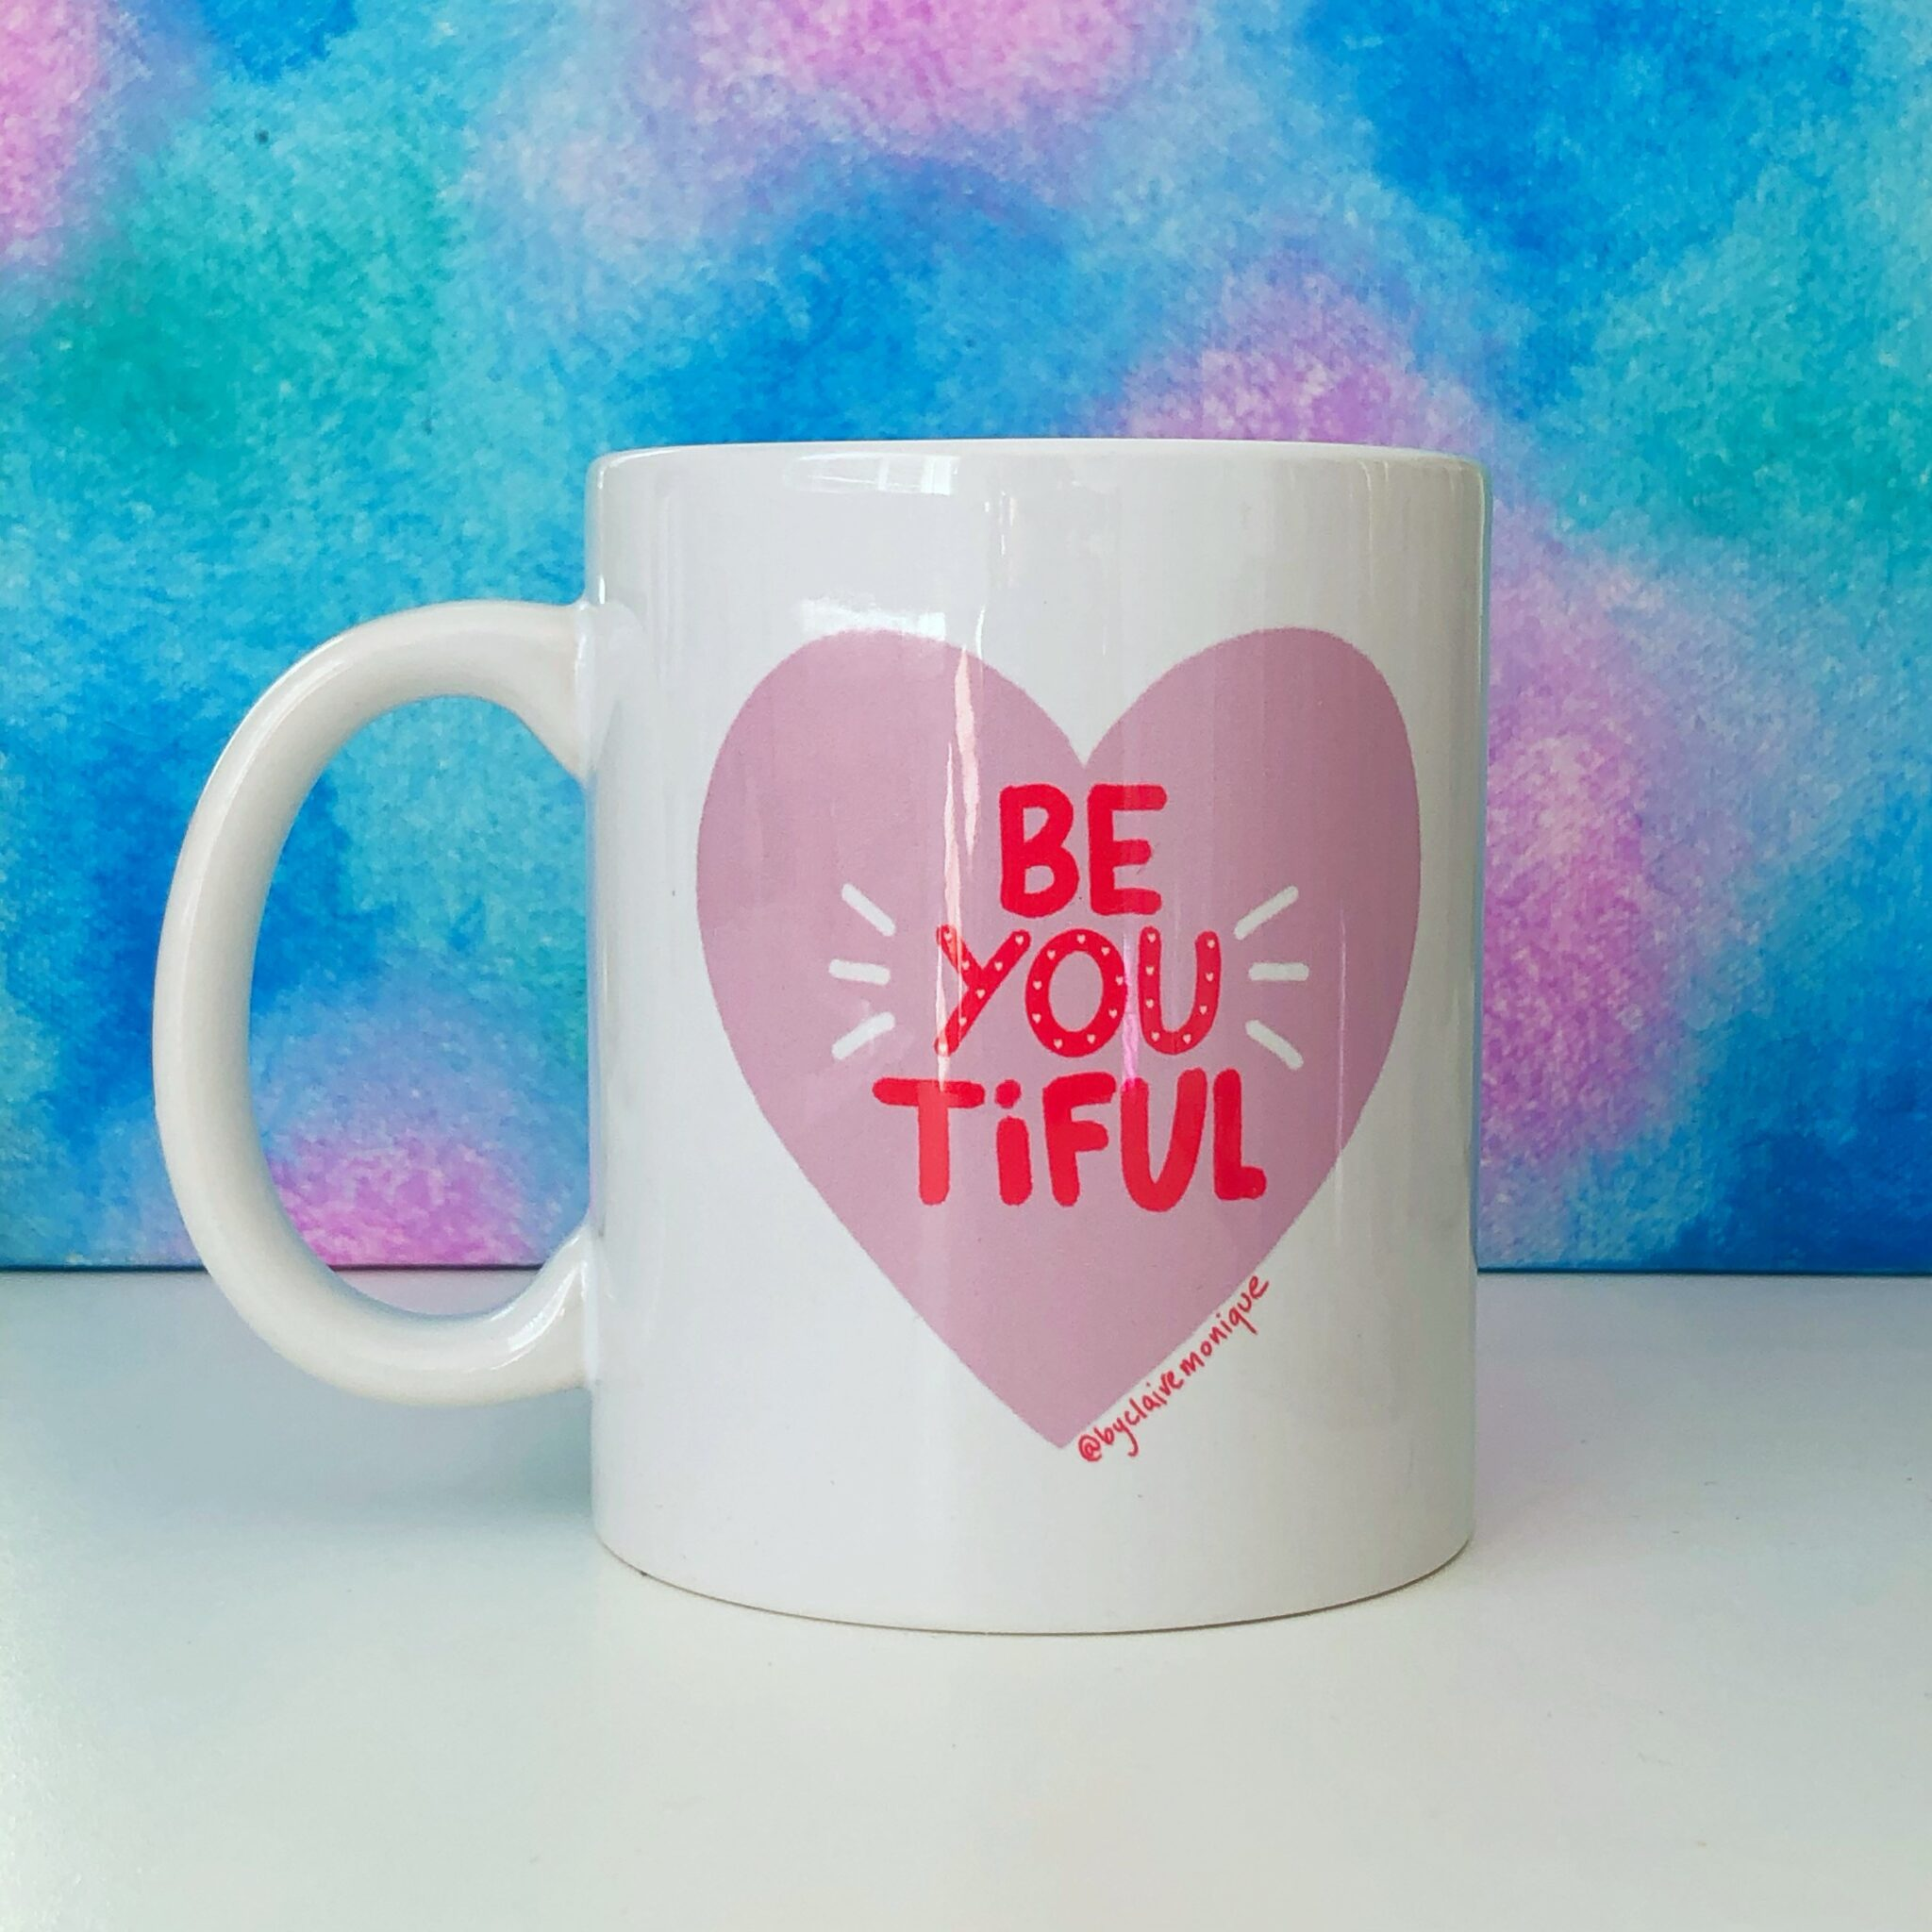 Be-You-tiful Mug By Claire Monique